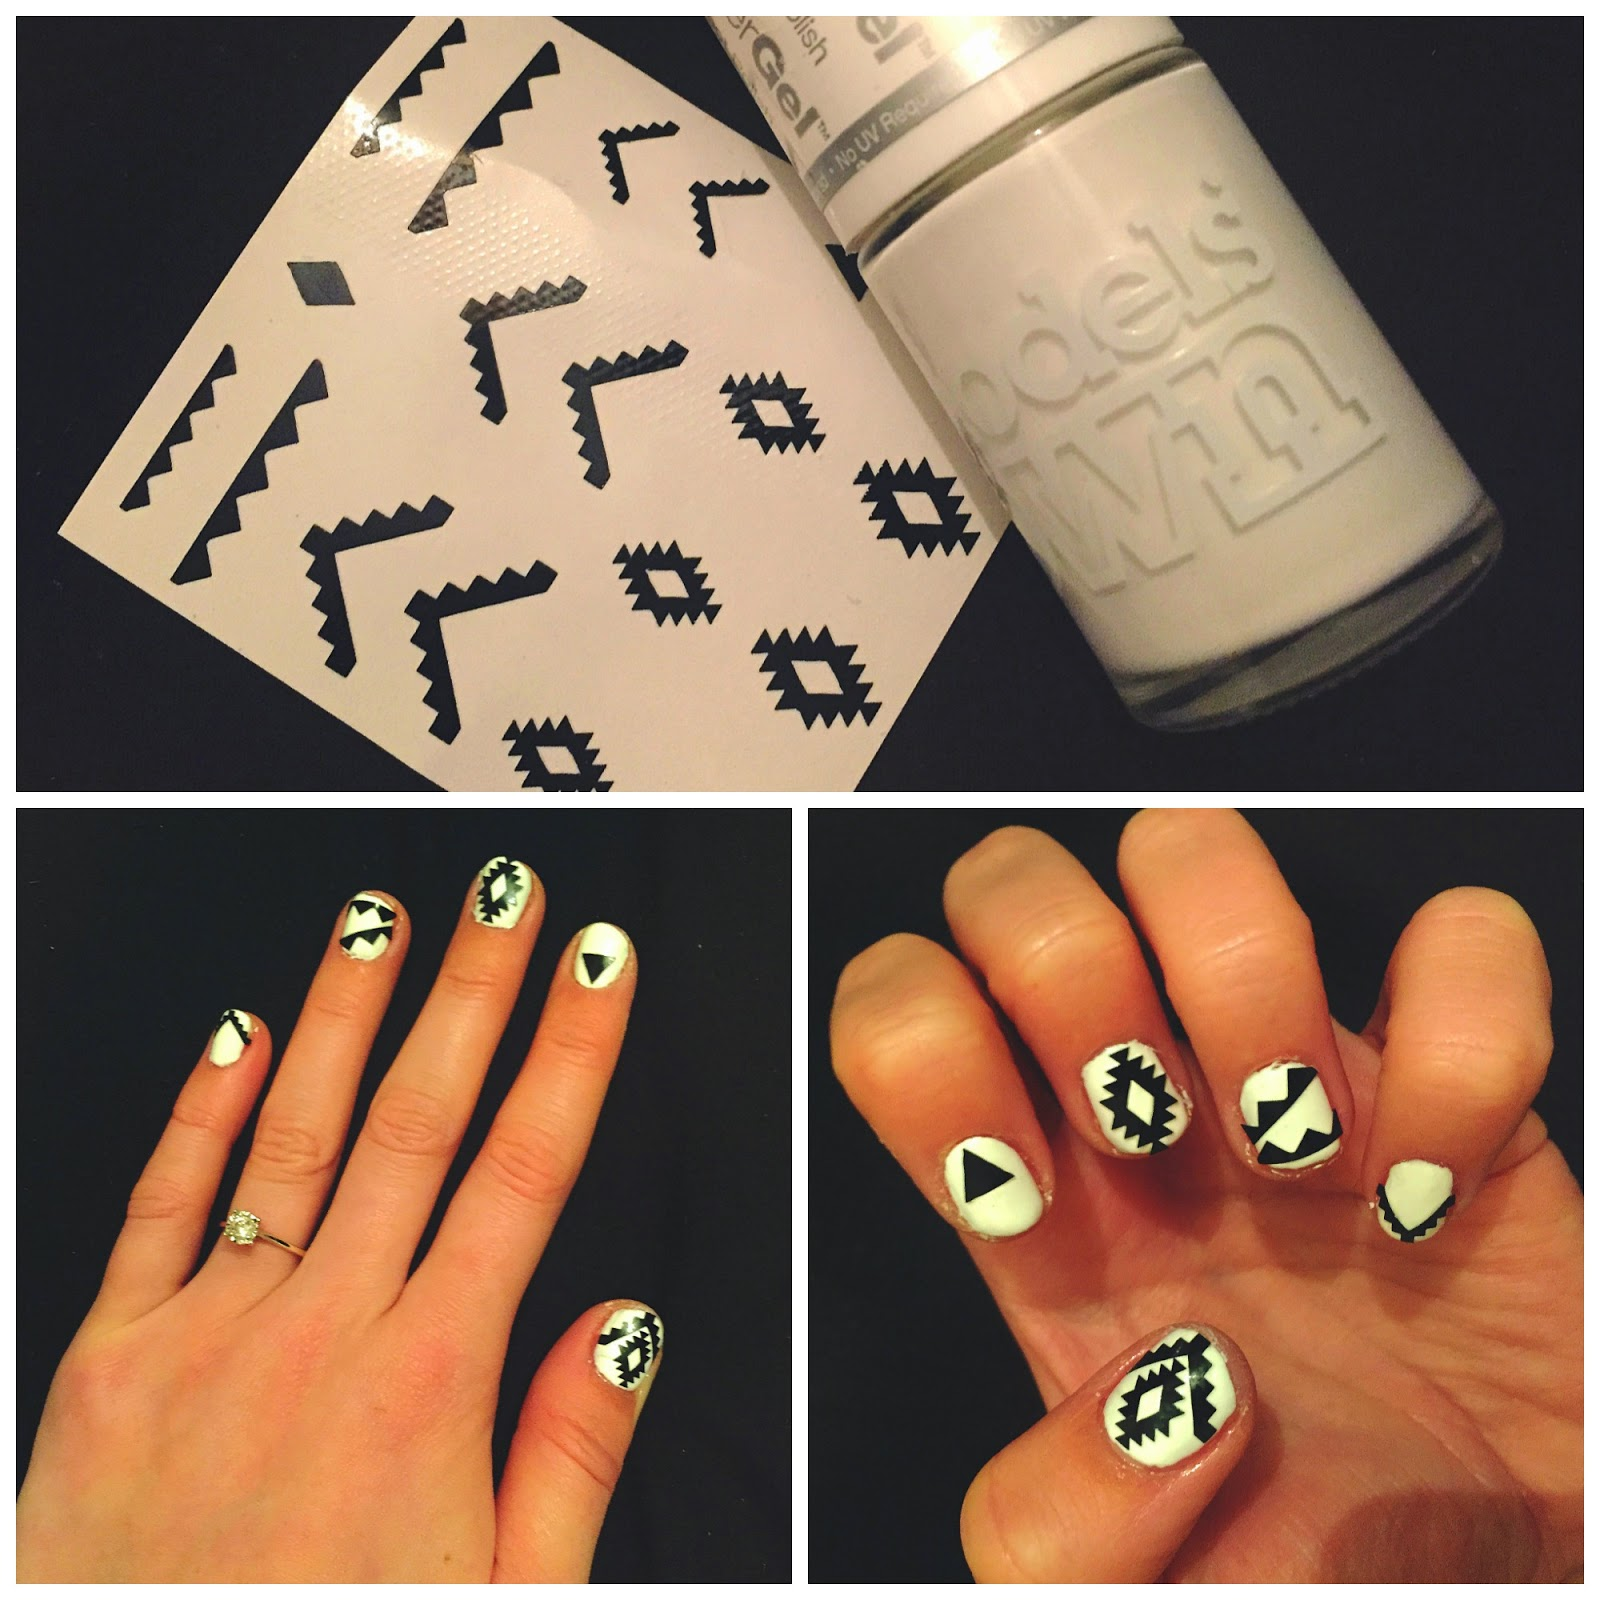 Party nails | Party nail art | Aztec nail art